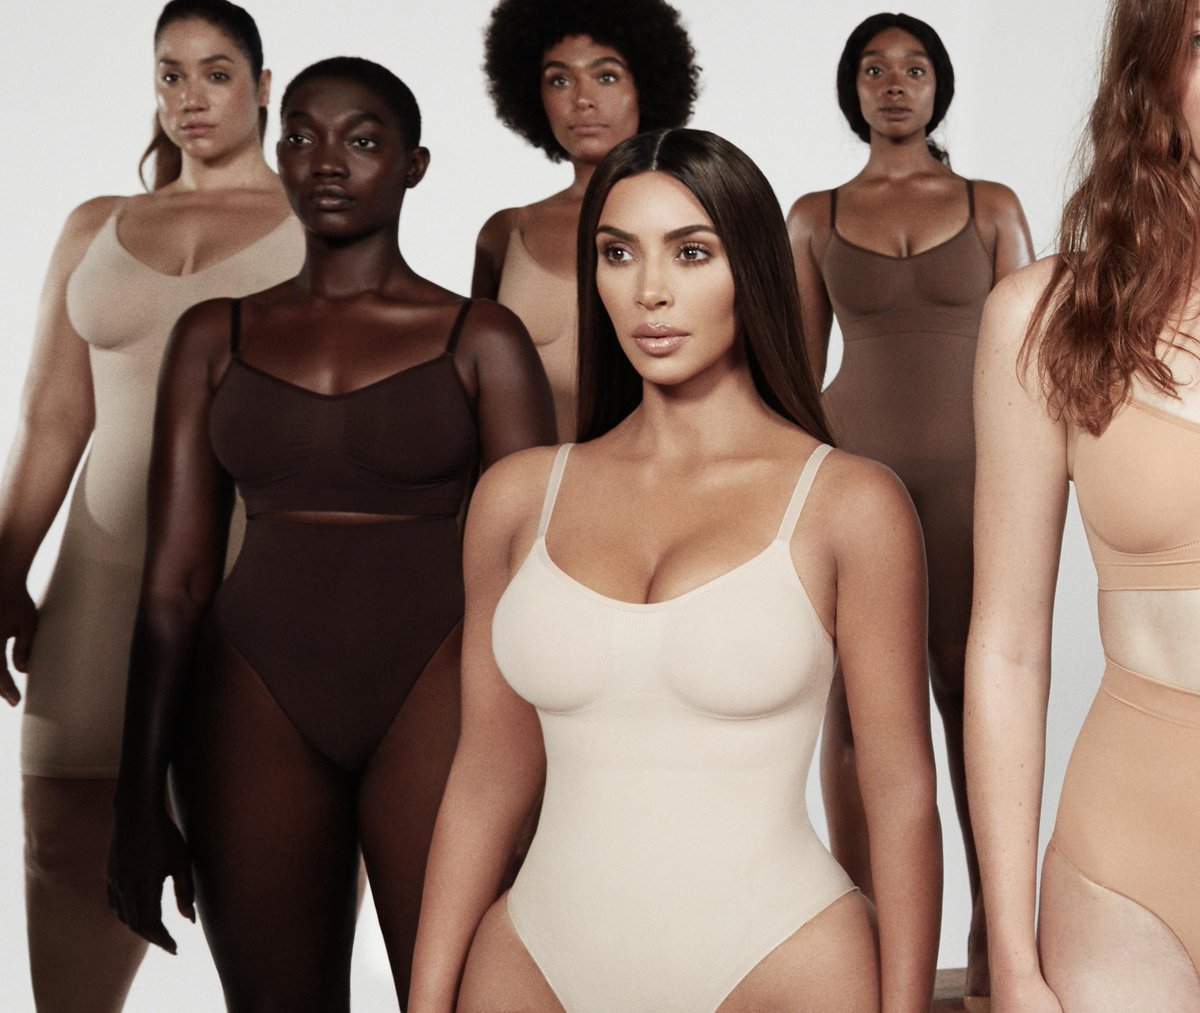 Coming soon: SKIMS. Created by @KimKardashian, @skims is the new, solution focused approach to shape enhancing undergarments and it's launching exclusively at Nordstrom on February 5. Stay tuned for more details: http://bit.ly/37e7HtO